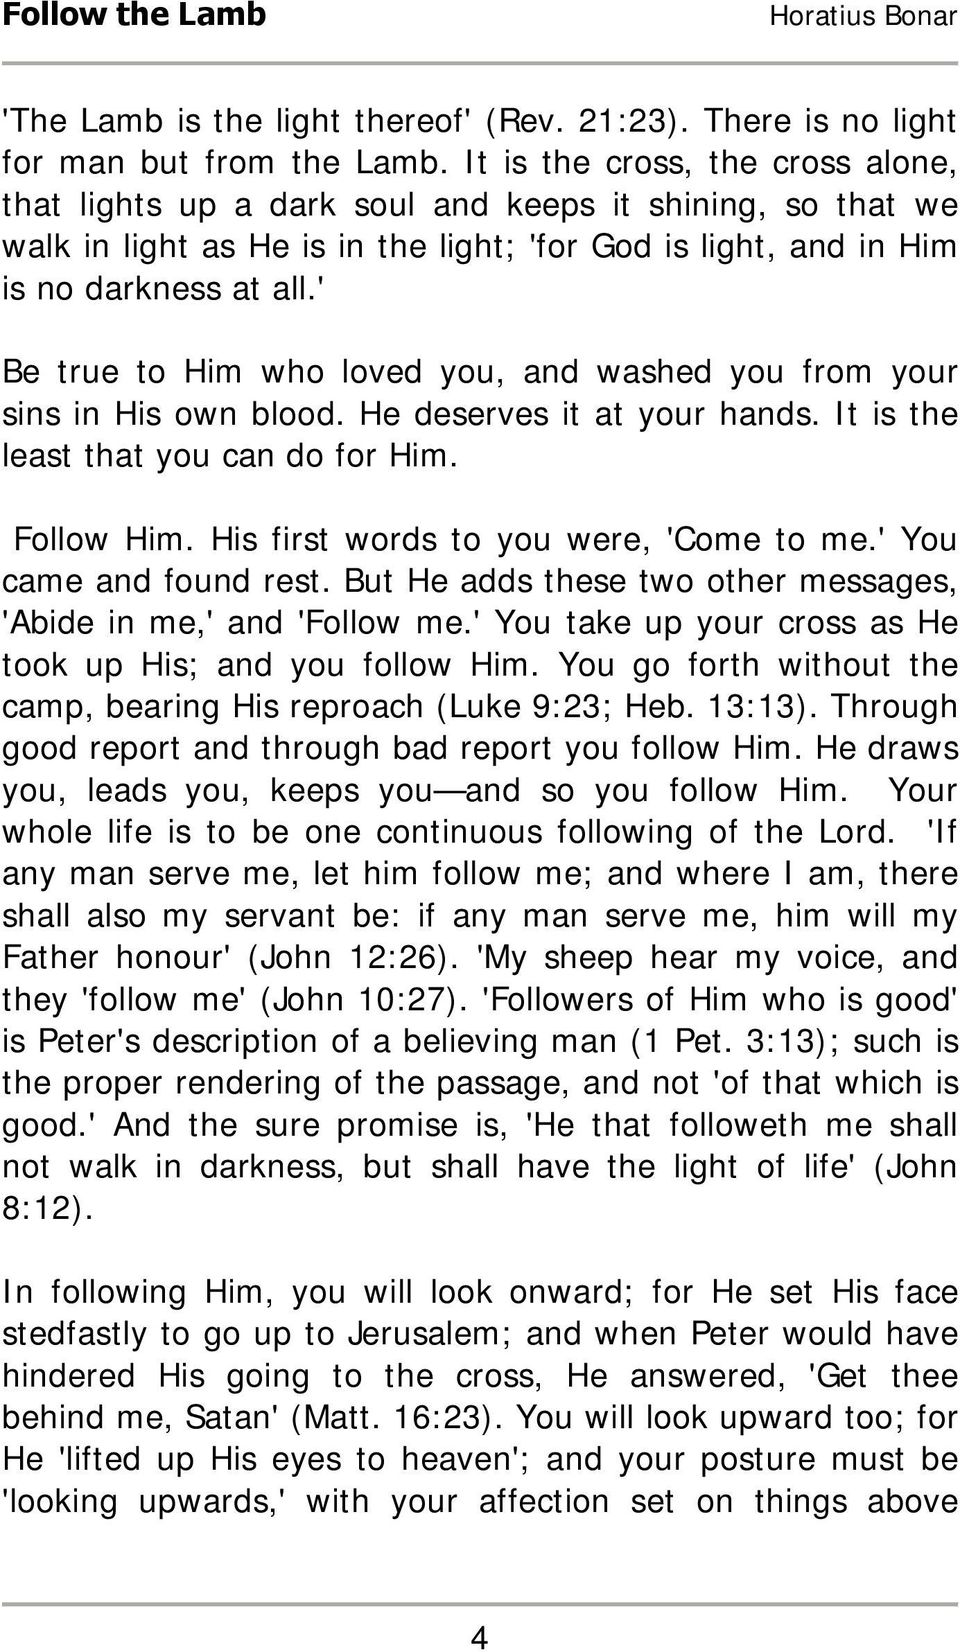 ' Be true to Him who loved you, and washed you from your sins in His own blood. He deserves it at your hands. It is the least that you can do for Him. Follow Him.